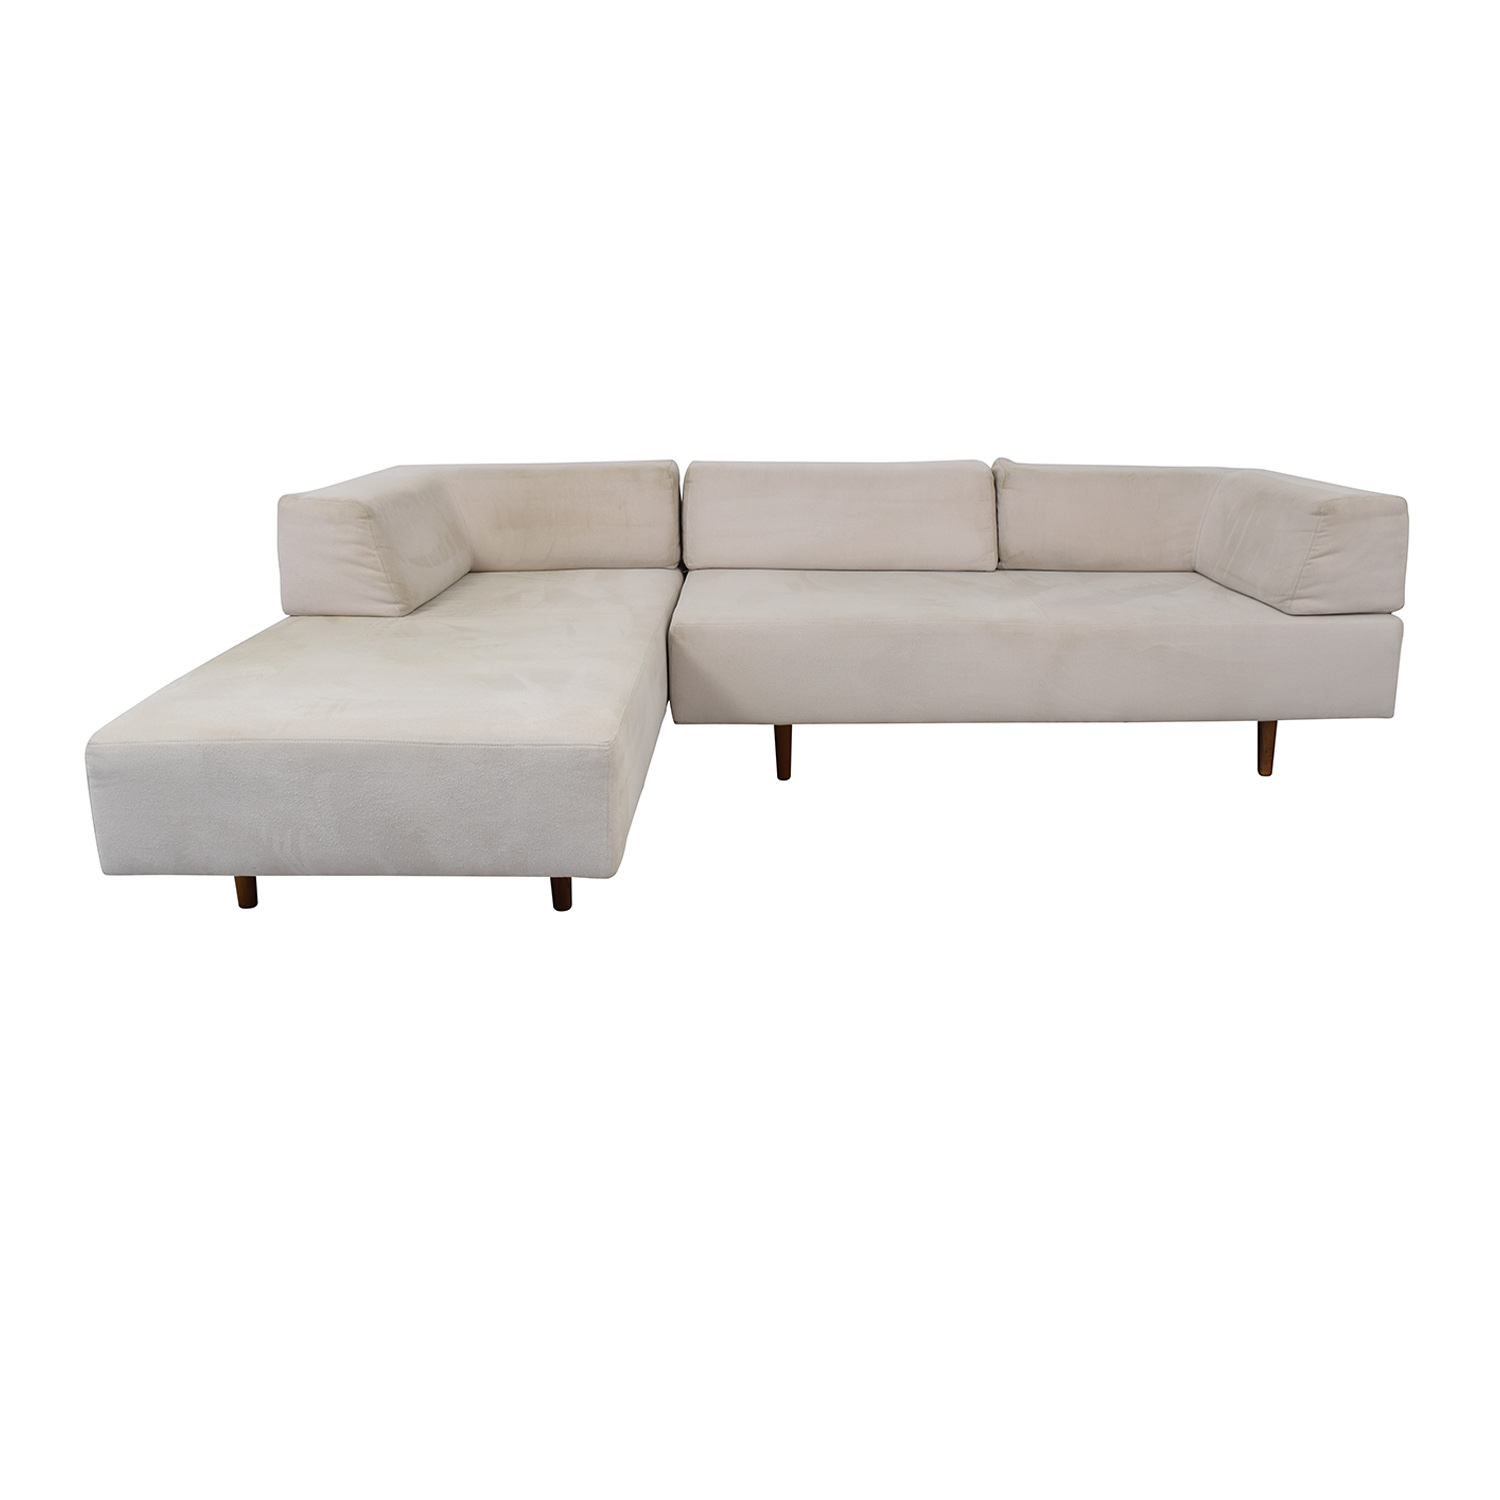 West Elm West Elm Tillary Sectional Sofa and Chaise Lounge nyc